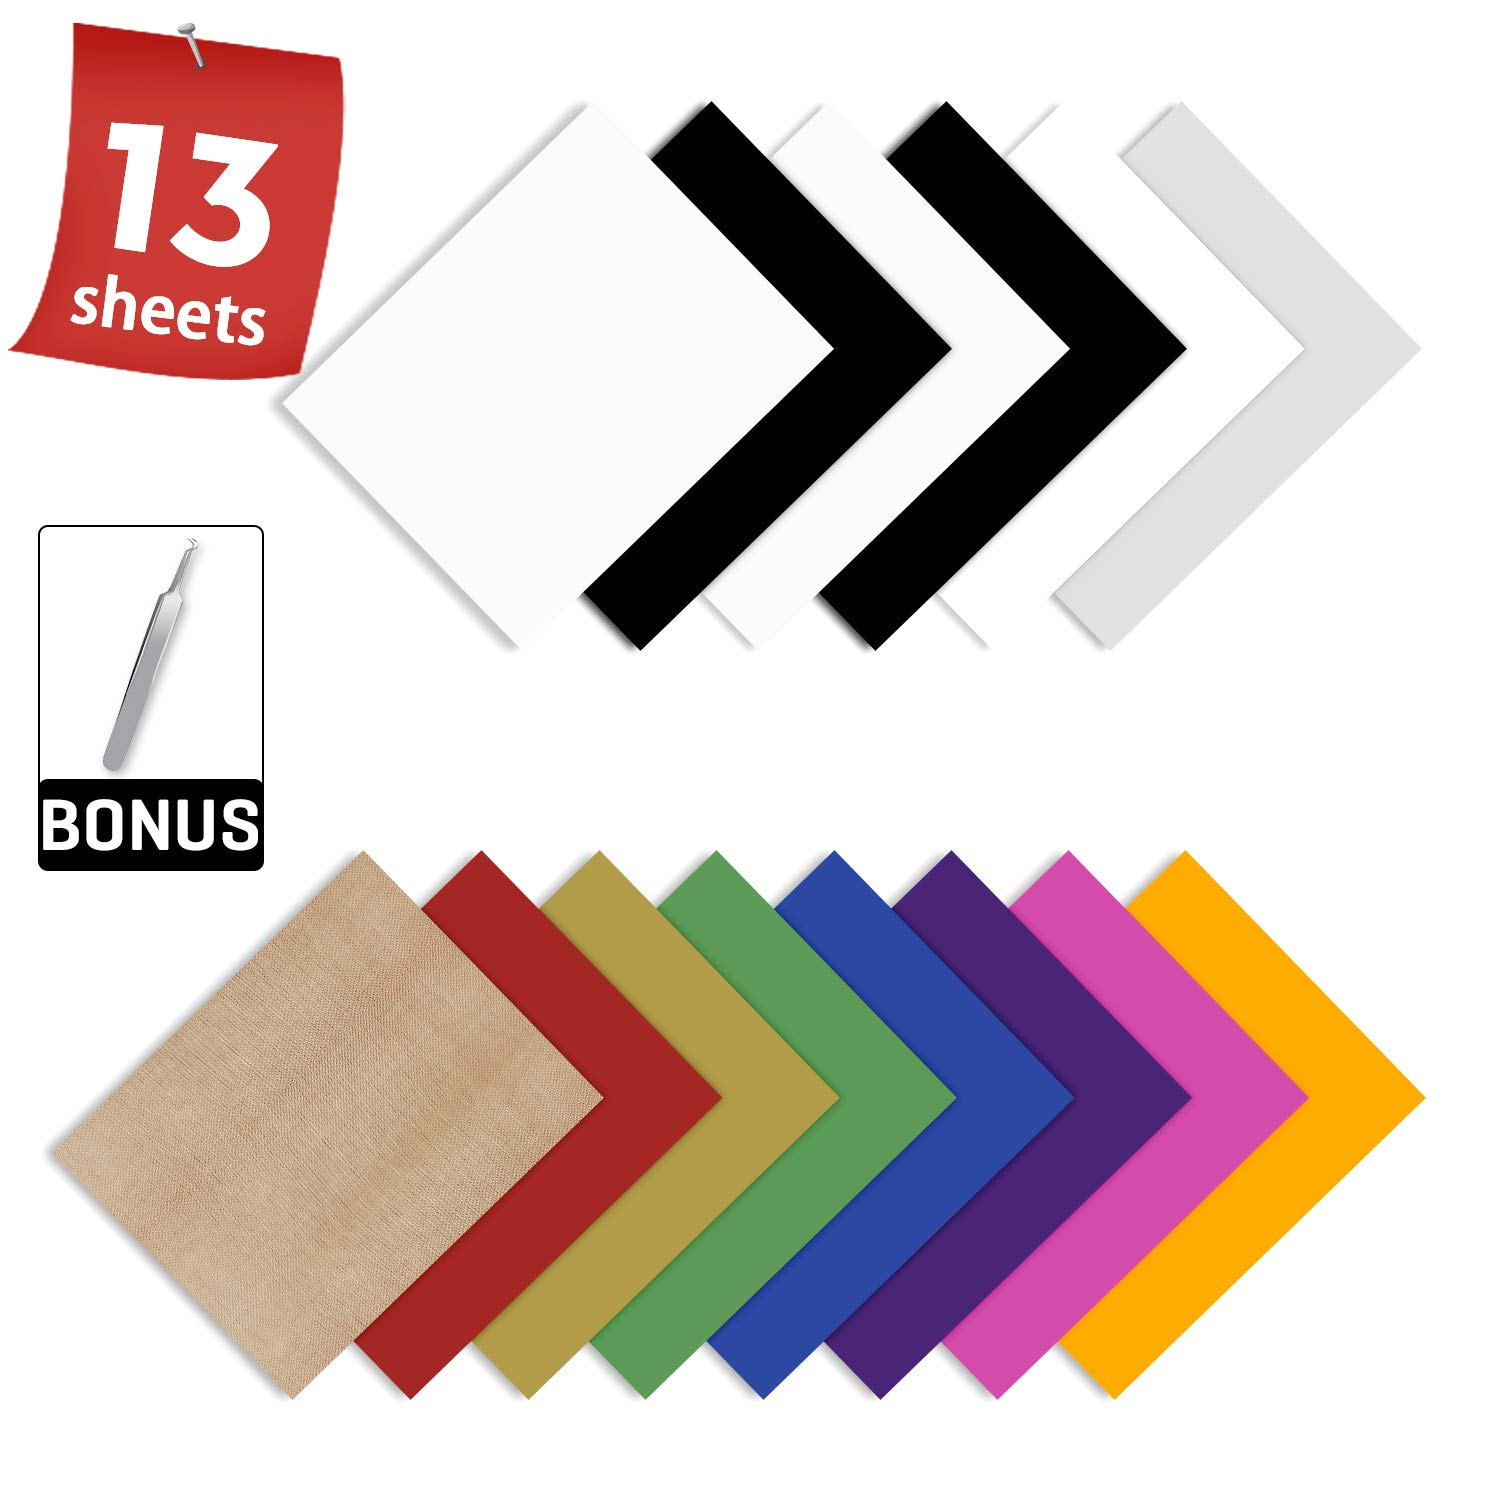 13 Sheets 12 x 10 Iron on Vinyl for T-Shirt HTV Heat Transfer Vinyl Bundle Silhouette Cameo or Heat Press Machine 10 Assorted Colors with HTV Accessories Tweezers for Cricut